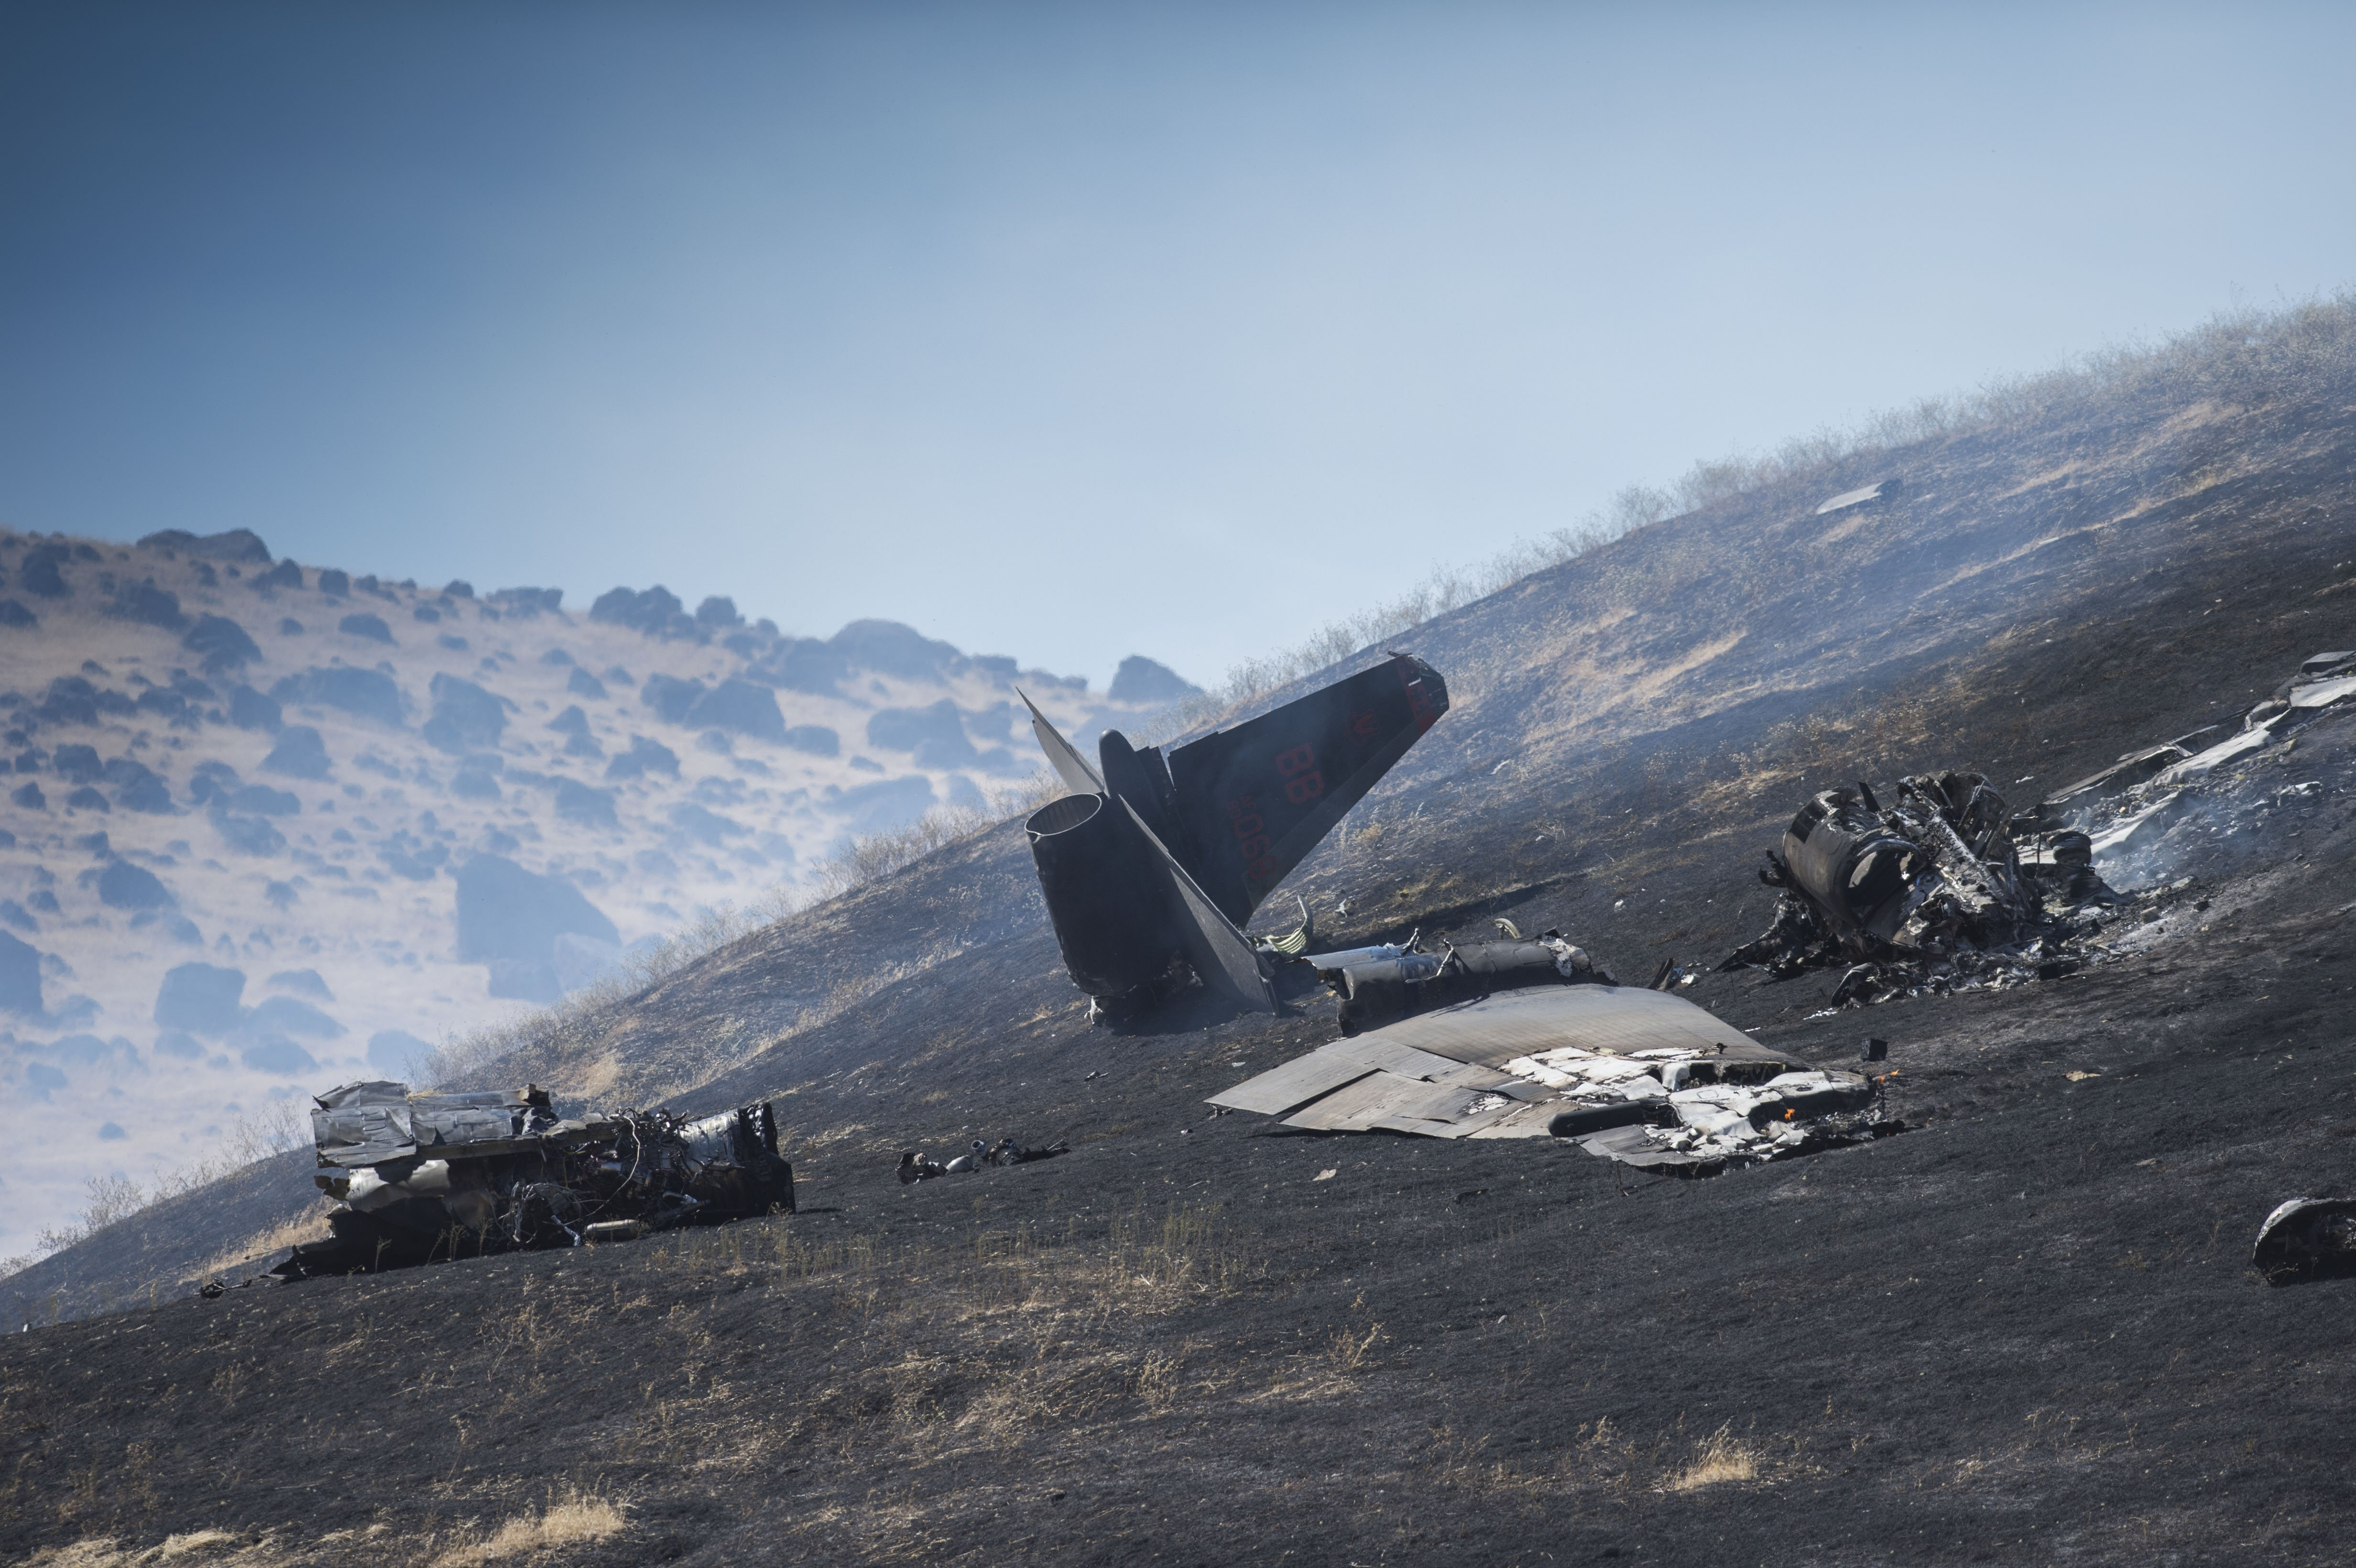 Pilot error blamed for fatal California U2 spy plane crash